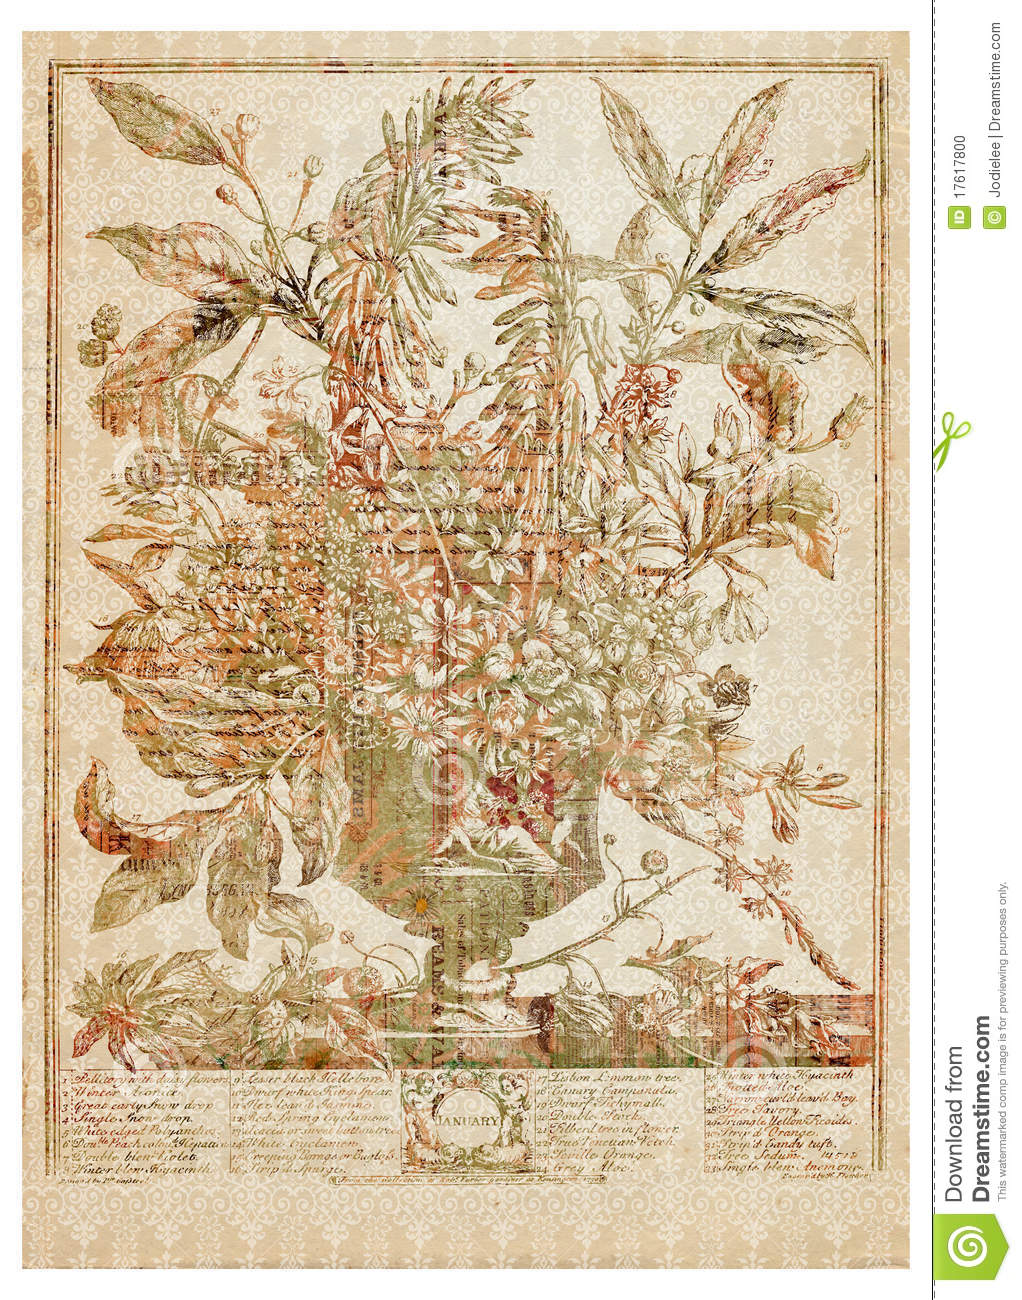 essay describing flower Garden means 'a piece of ground, often near a house, used for growing flowers, fruit, or vegetables' synonyms of garden are park - yard - pleasure ground.